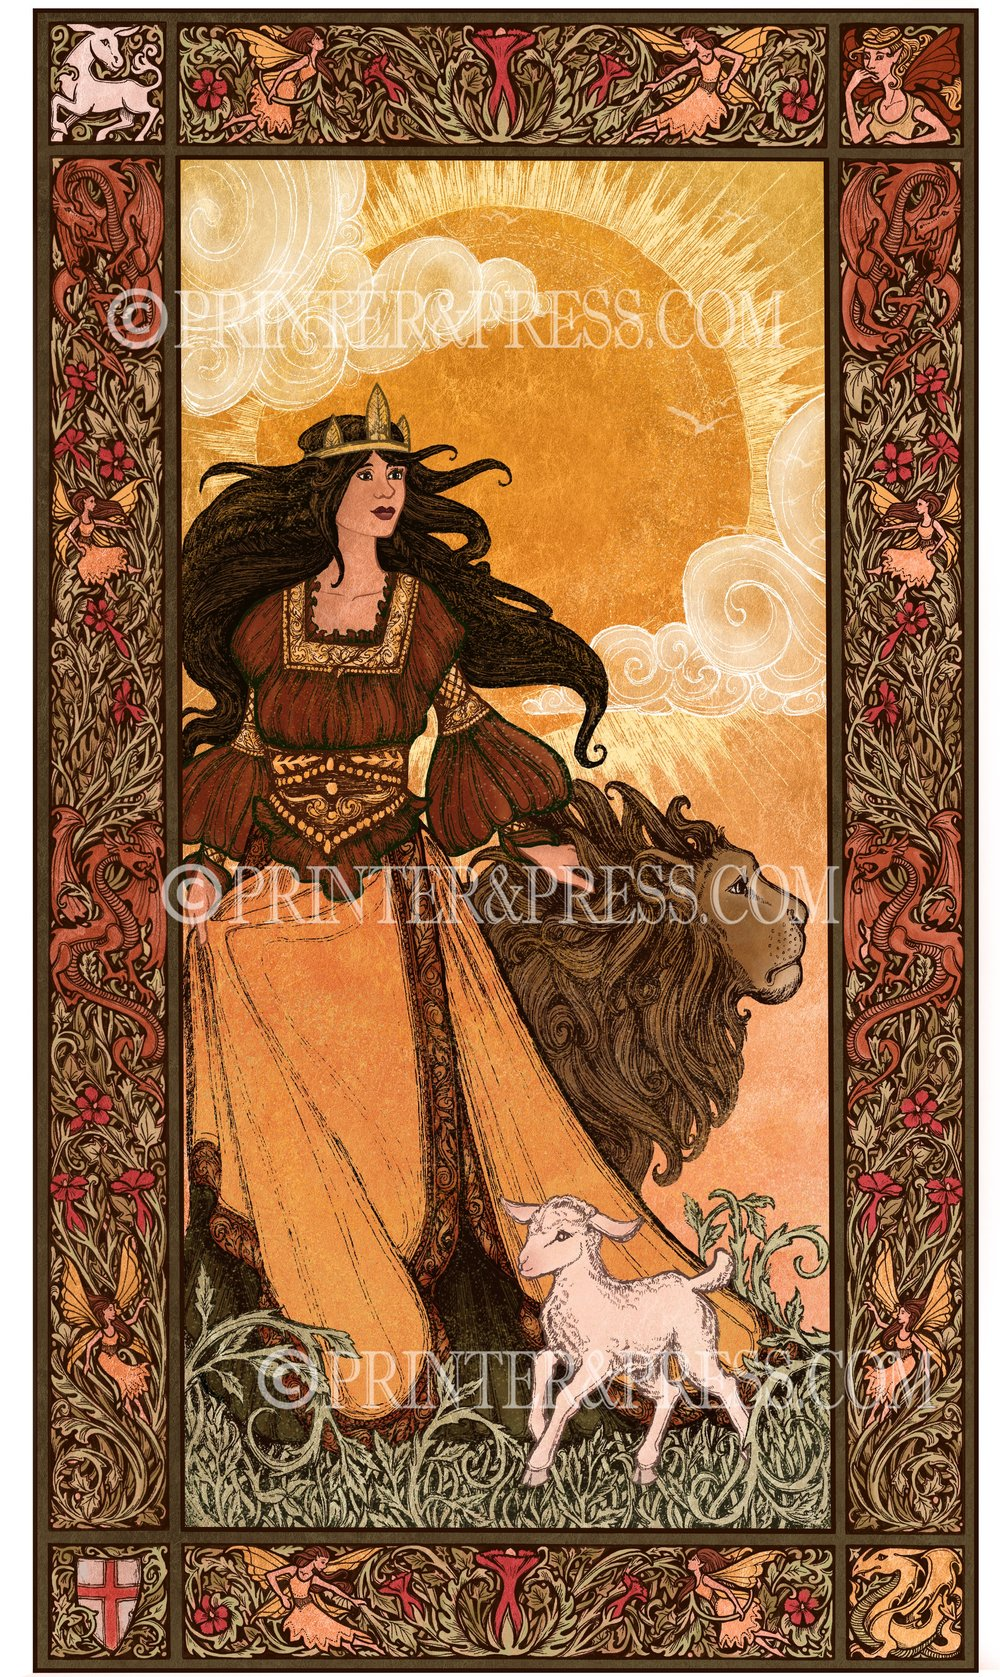 This digital illustration is based on Una and the Lion from Edmund Spenser's epic poem, The Faerie Queene. In the poem, Una encounters a fierce lion while on her quest to help free her parents from a dragon. The lion is so captivated by her beauty and innocence that he decides not to eat her and instead becomes her protector. A much better plan I think!